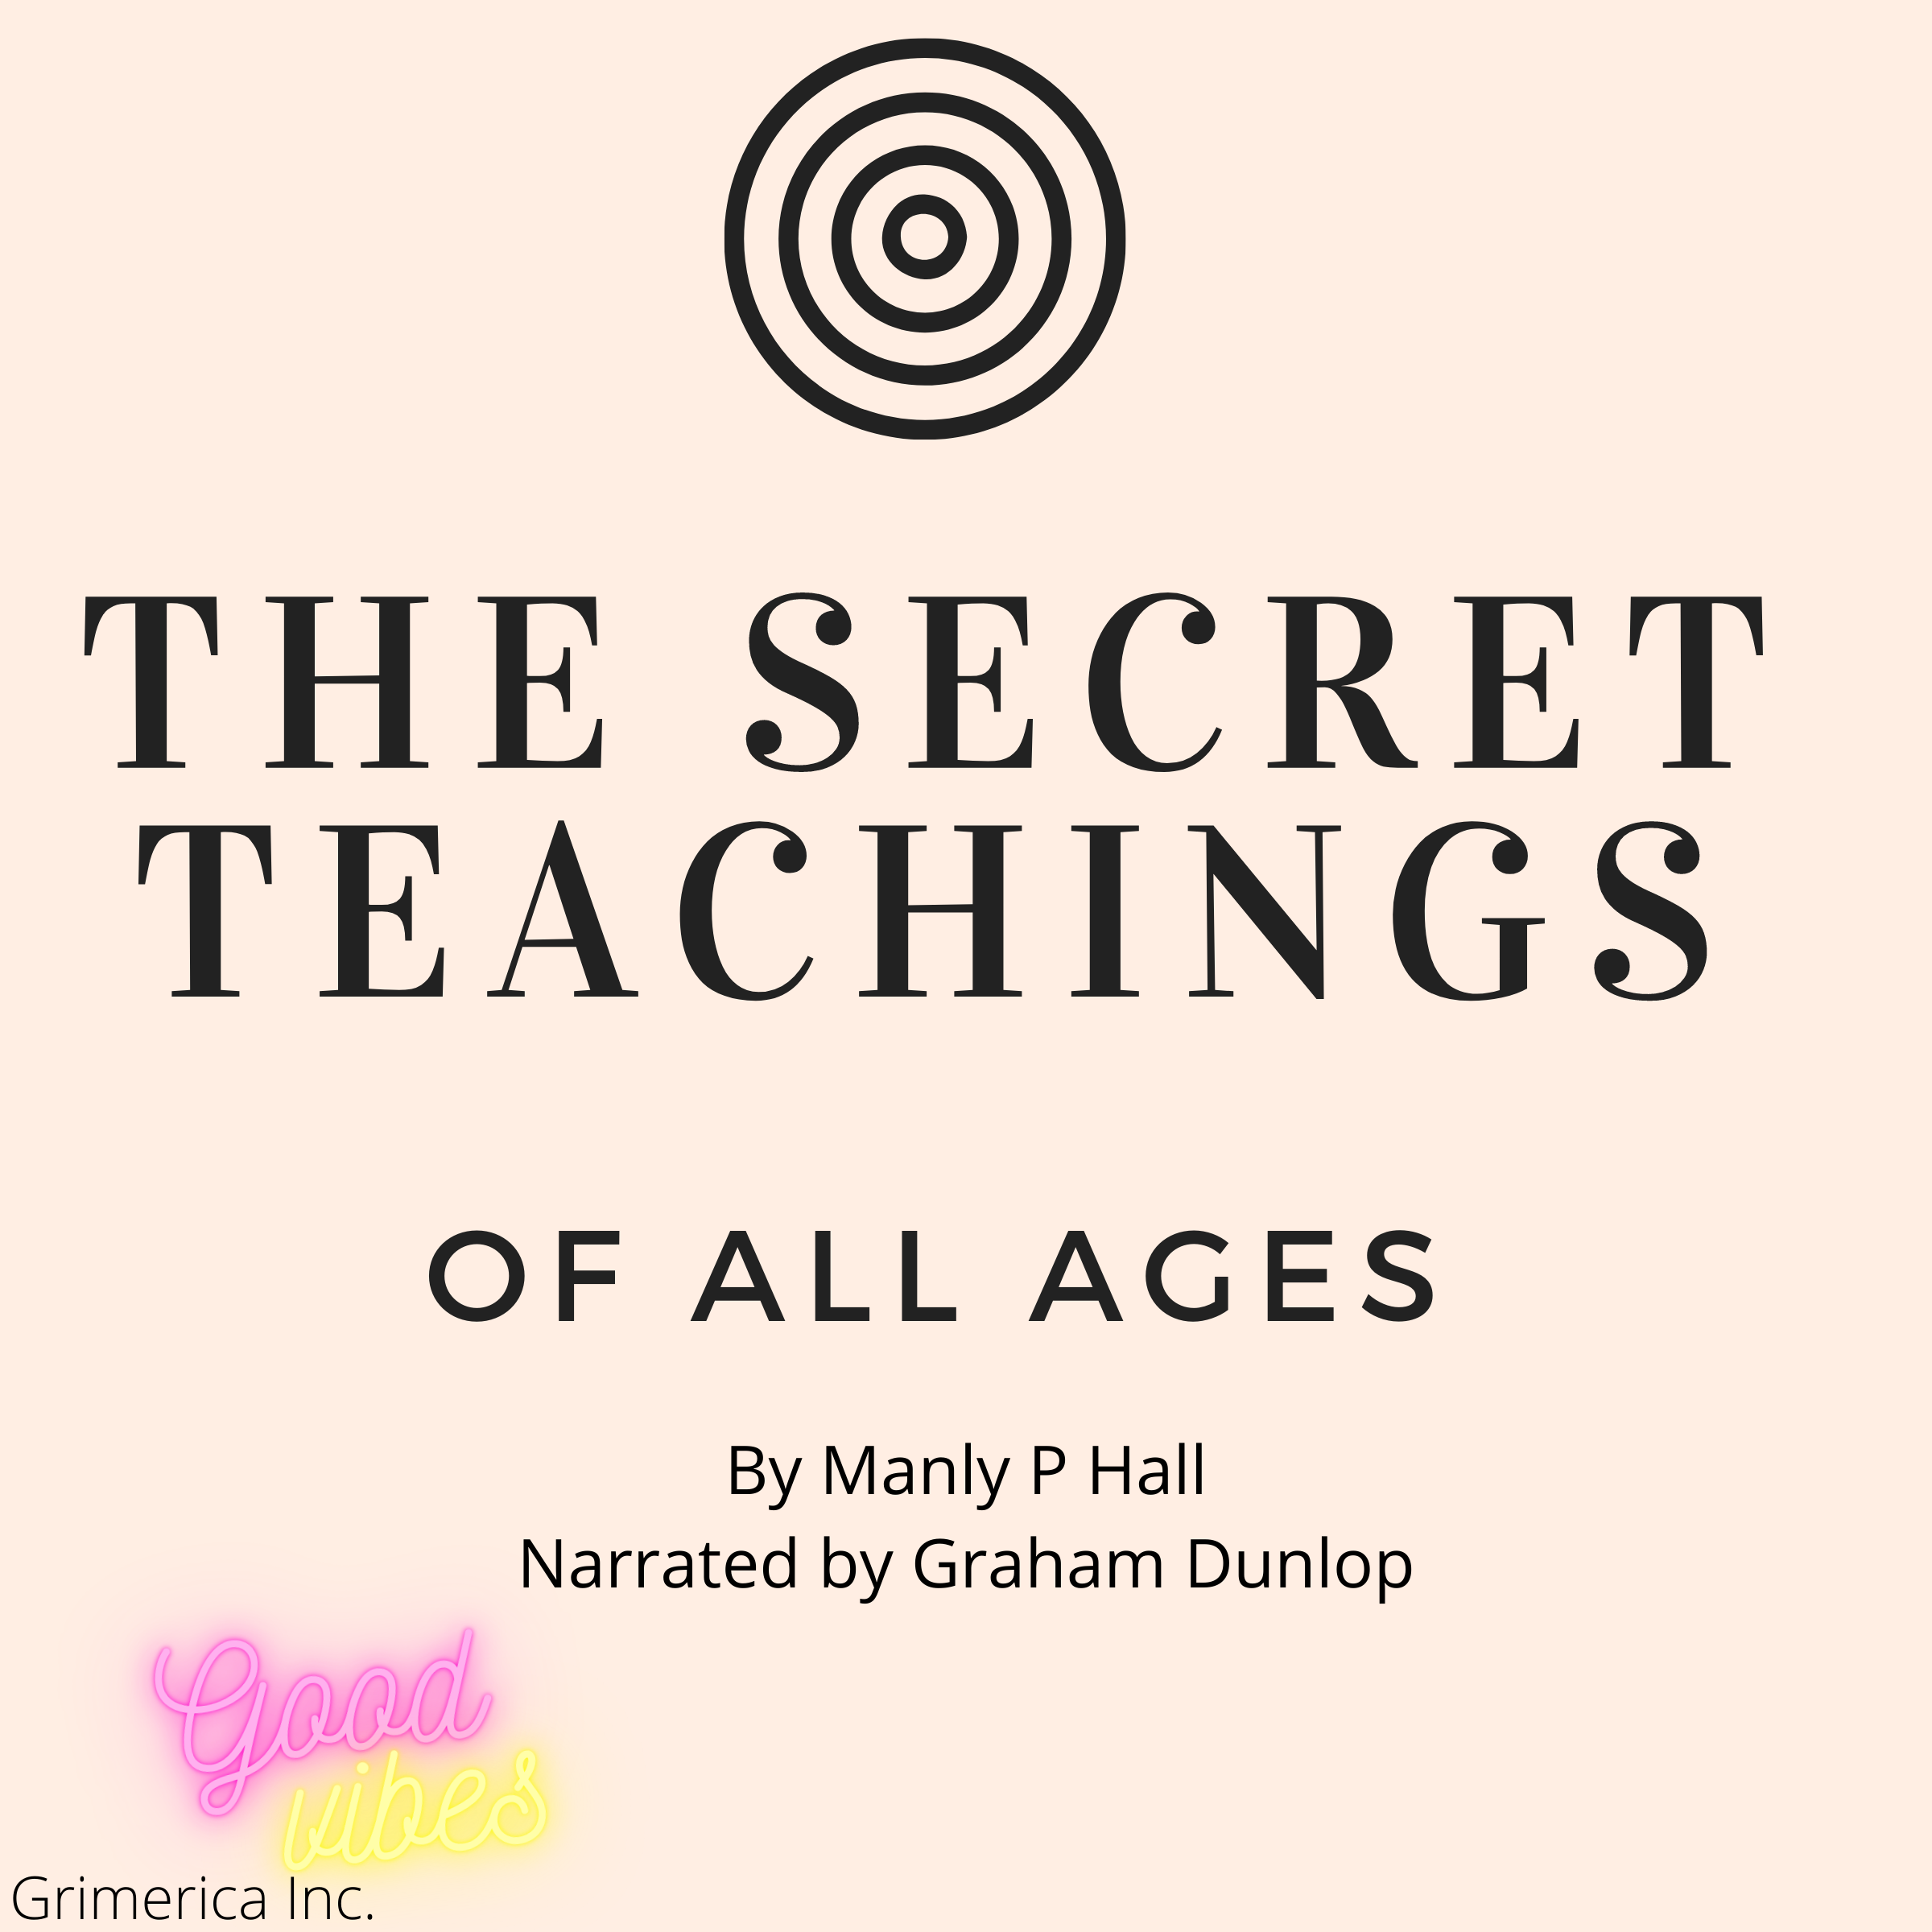 COMING SOON – The Secret Teaching of All Ages